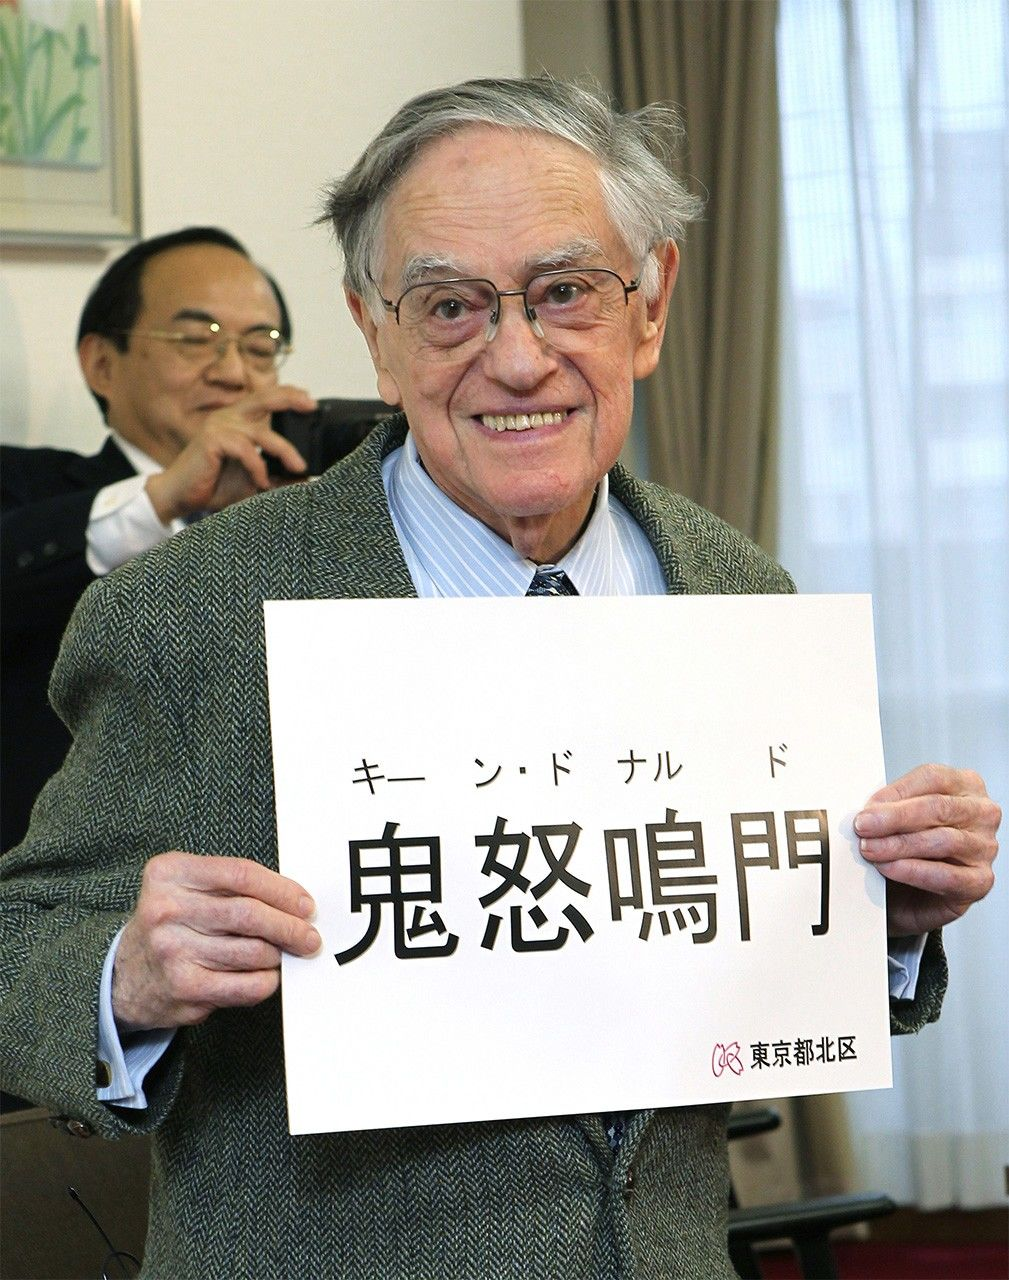 Donald Keene shows reporters his official Japanese name in kanji in Tokyo on March 8, 2012, after taking Japanese citizenship. In the background is his adopted son Seiki. (© Jiji)